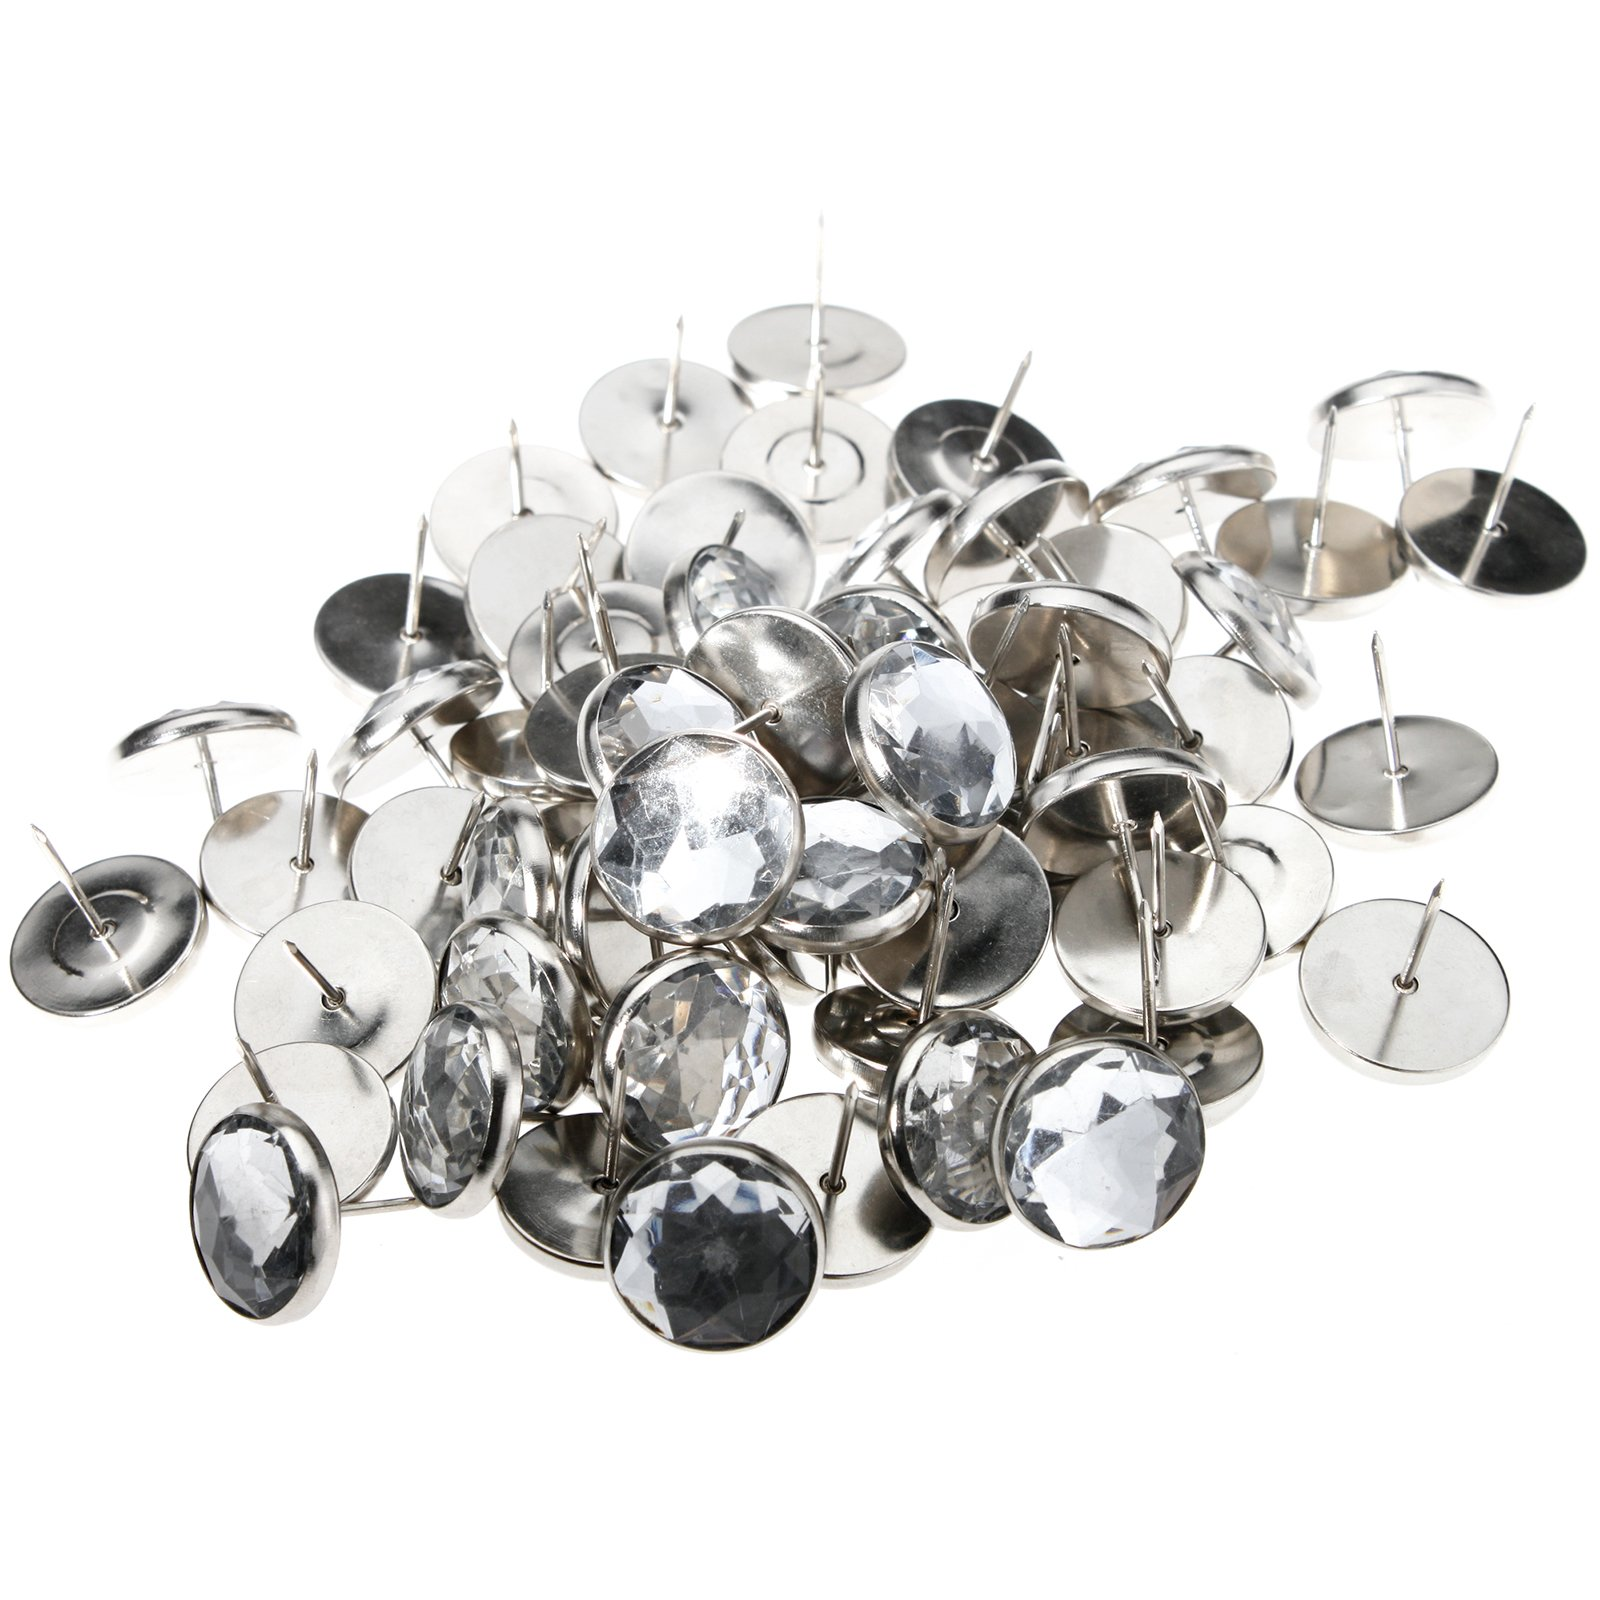 Creative Idear 50 x Sofa Headboard Wall Decor Bright Deco Tacks Crystal Upholstery Nail Button